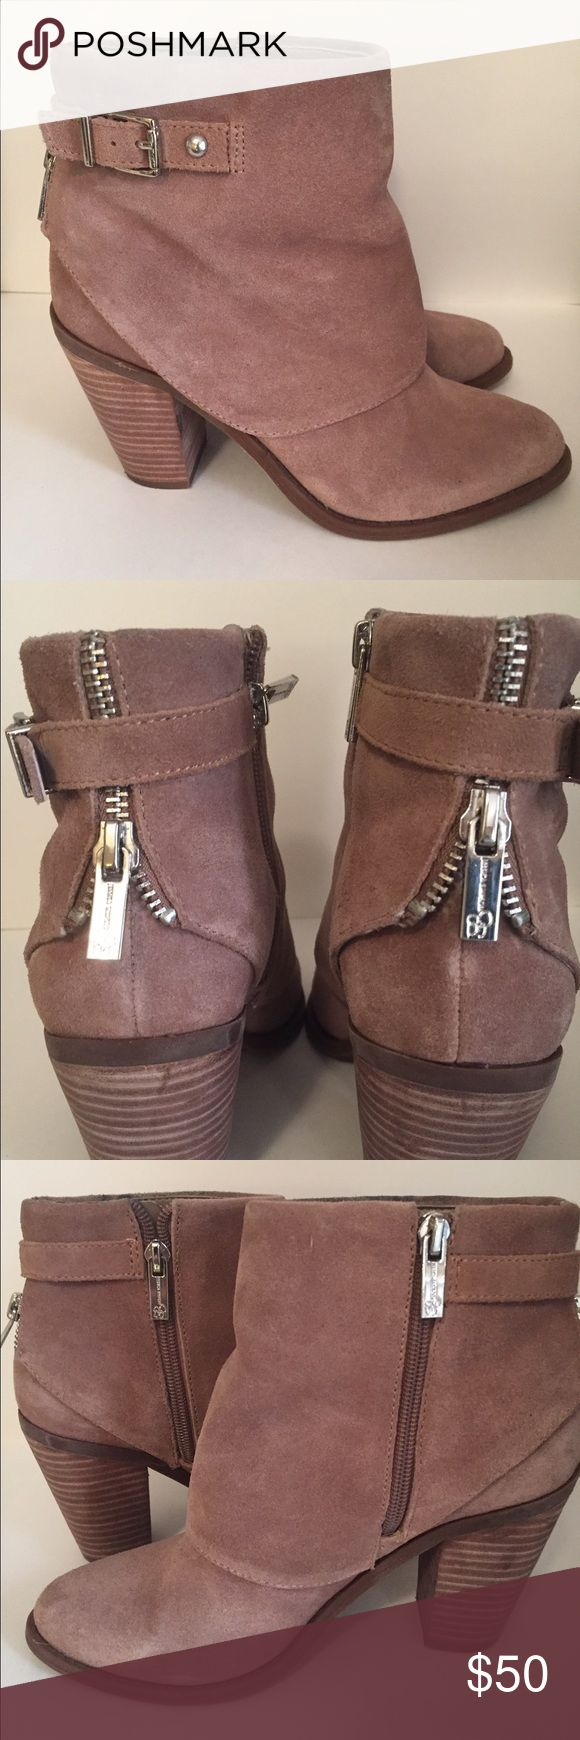 Taupe Jessica Simpson booties Taupe Jessica Simpson booties in suede. Great with jeans and little dresses. Jessica Simpson Shoes Ankle Boots & Booties